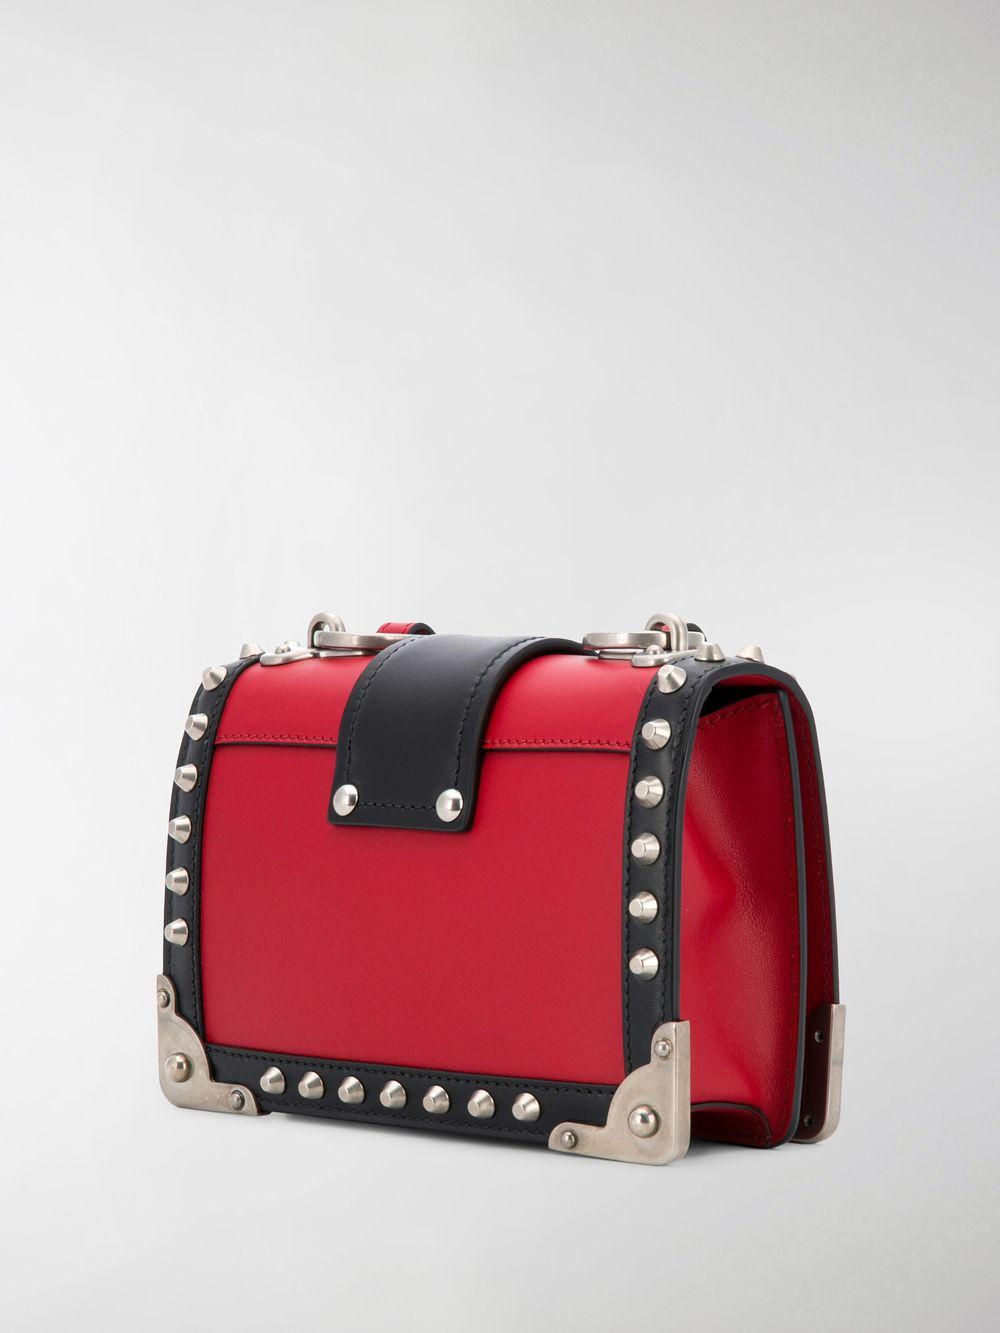 Prada Small Cahier Studs City Crossbody Bag in Red